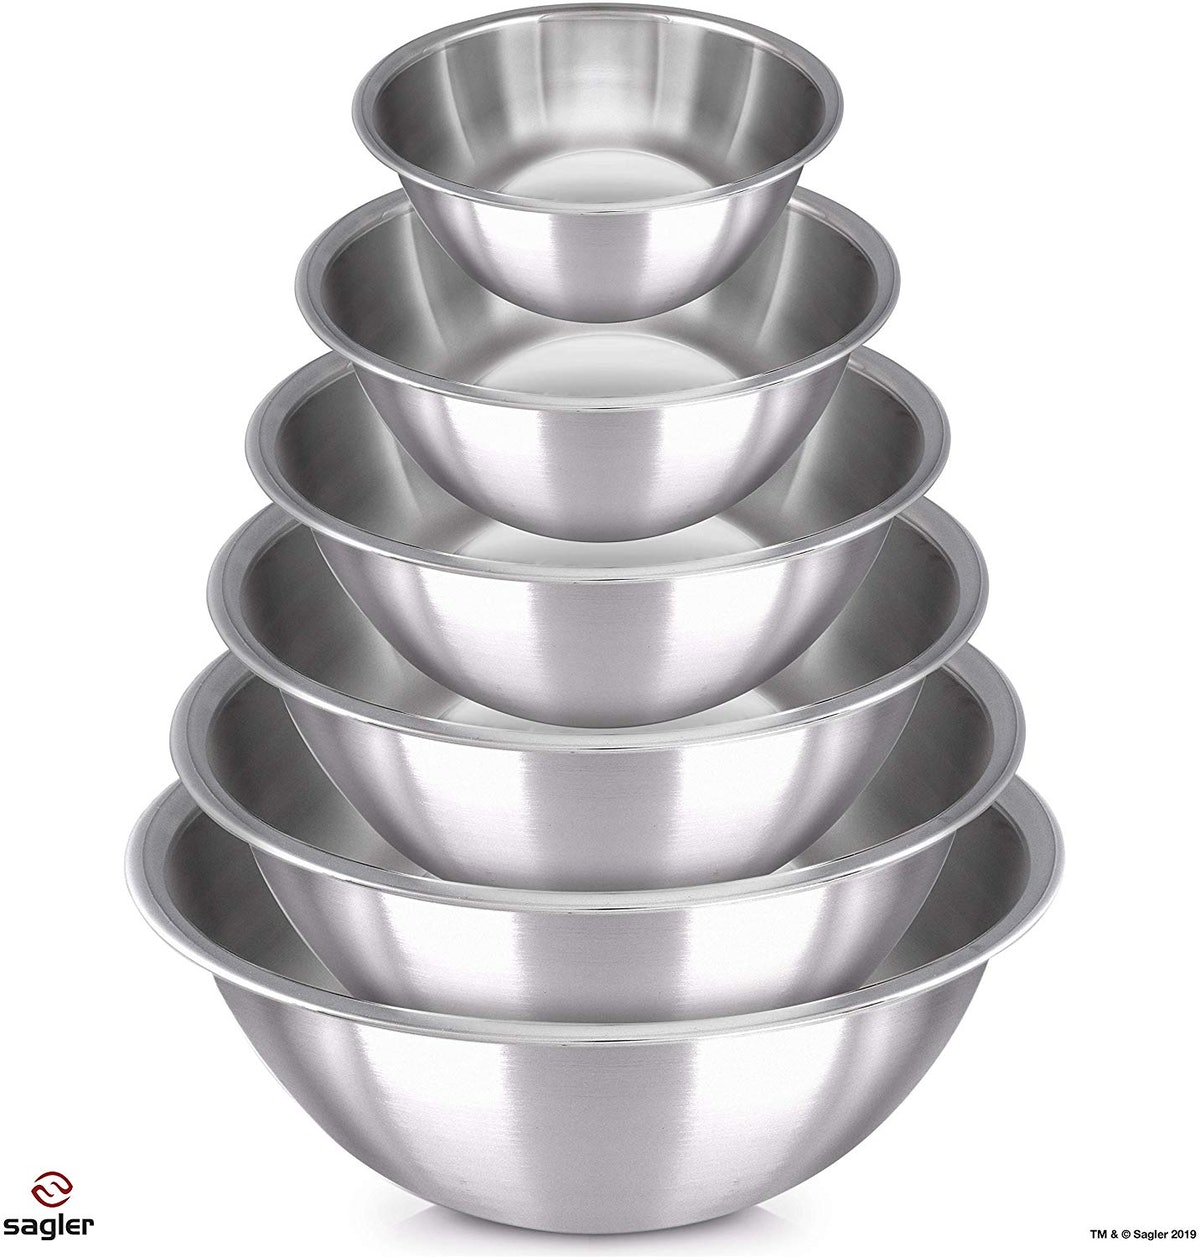 Sagler Stainless Steel Mixing Bowls (6-Pack)